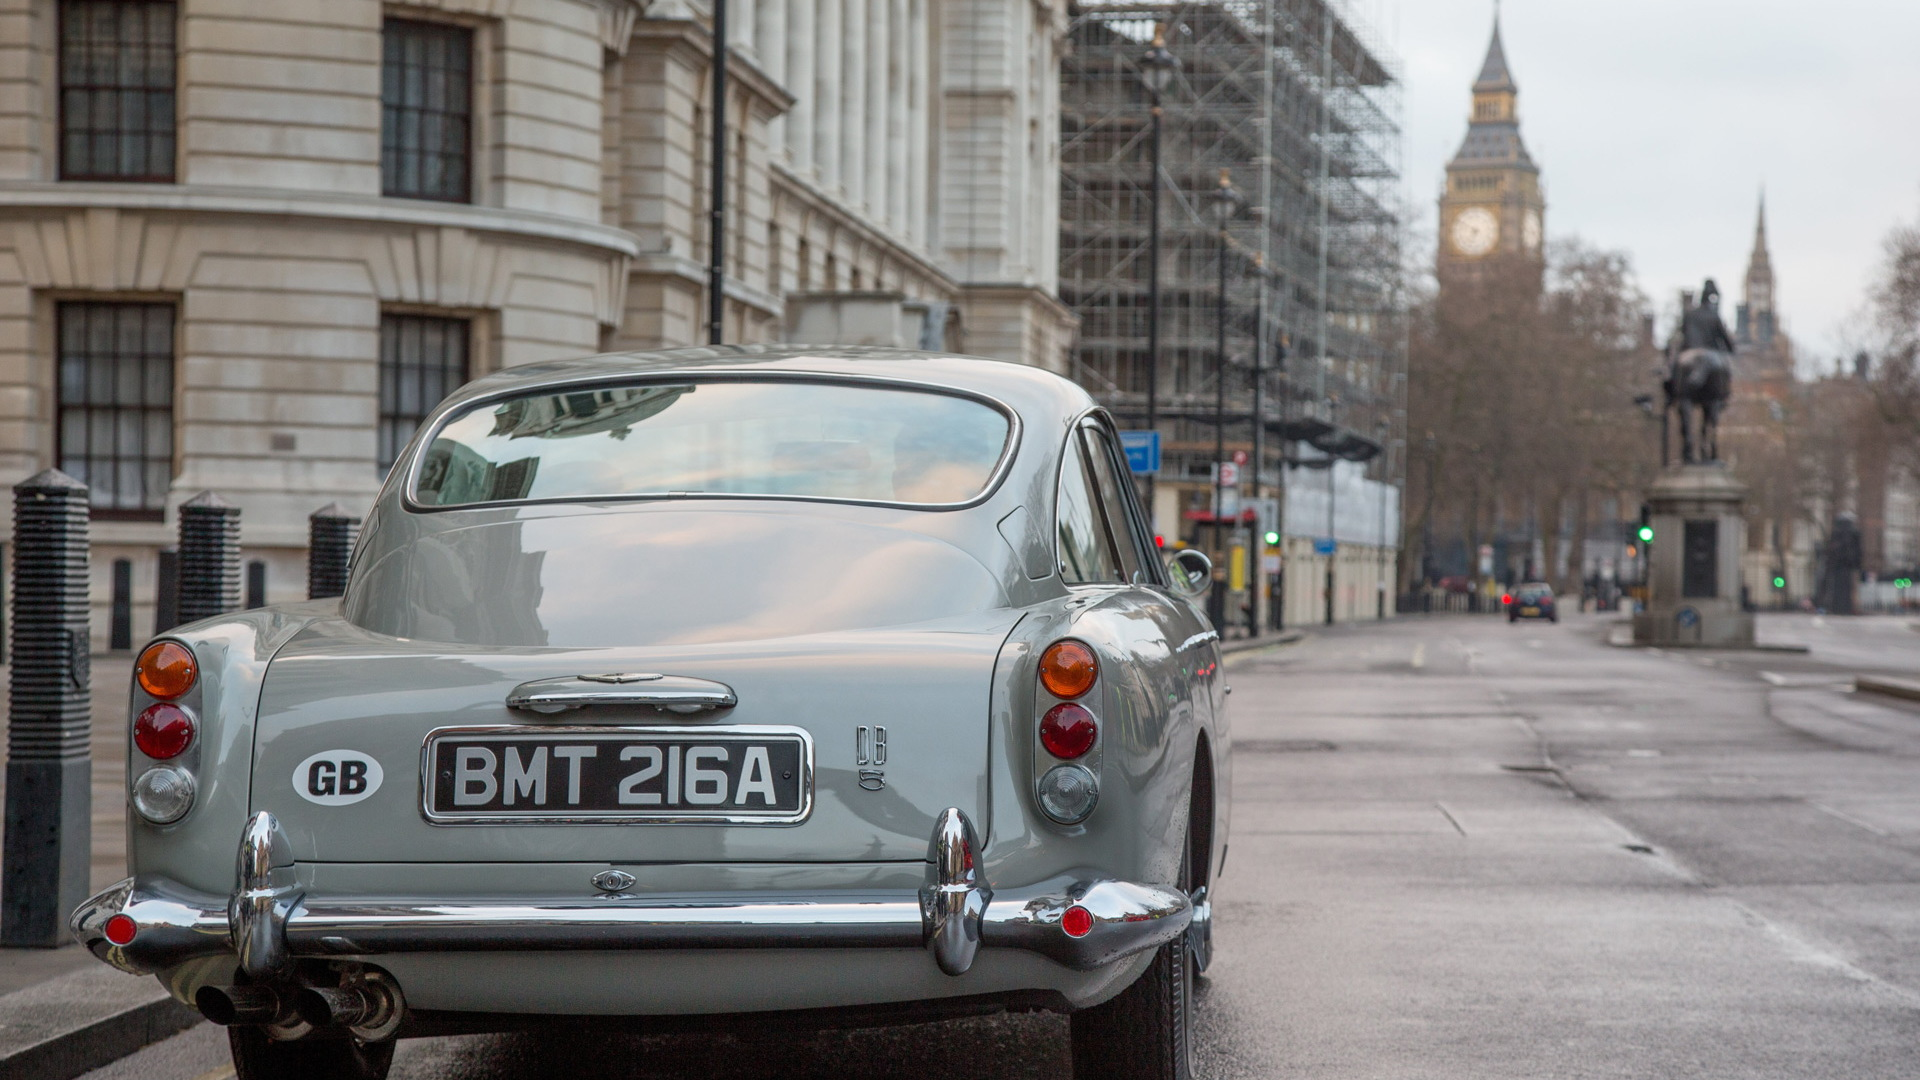 Watch How the 007 Gadgets on the Aston Martin Goldfinger DB5 Work